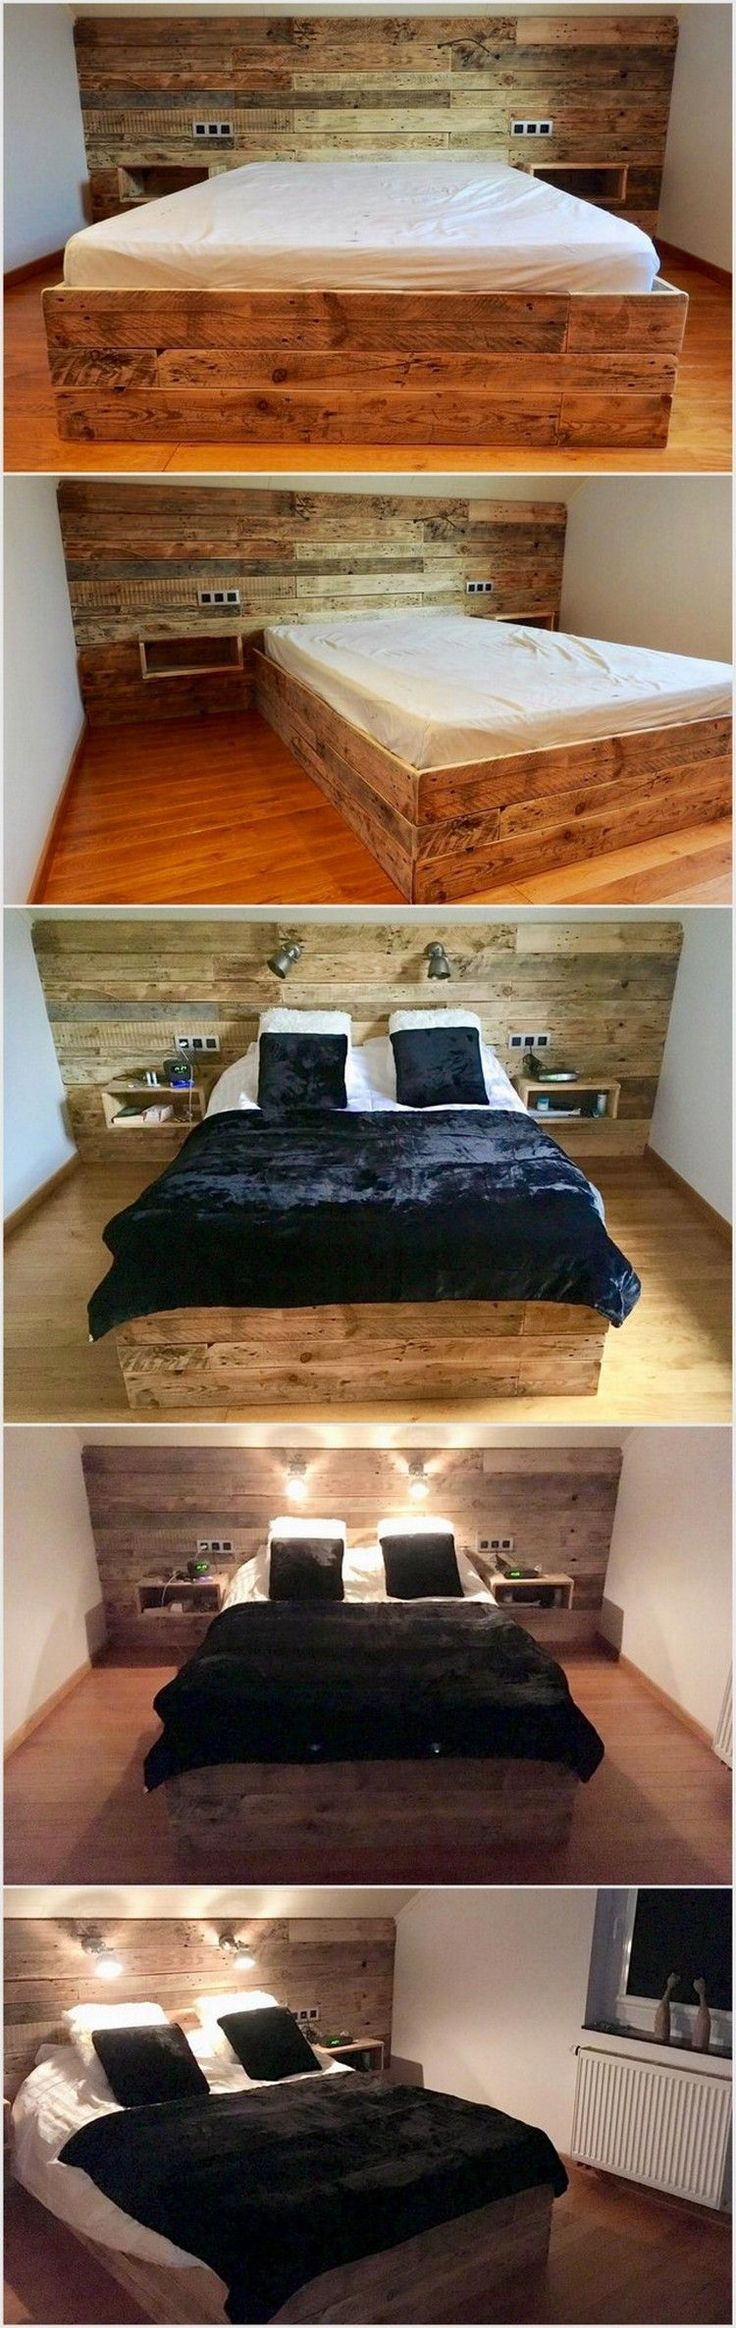 You can now make this awesome pallet wood bed if you have time to beautify your bedroom. We have shown you the creation methods of this project. You can also add lamps on the headboards. The headboard and bed is quite large but you can personalize each of them.